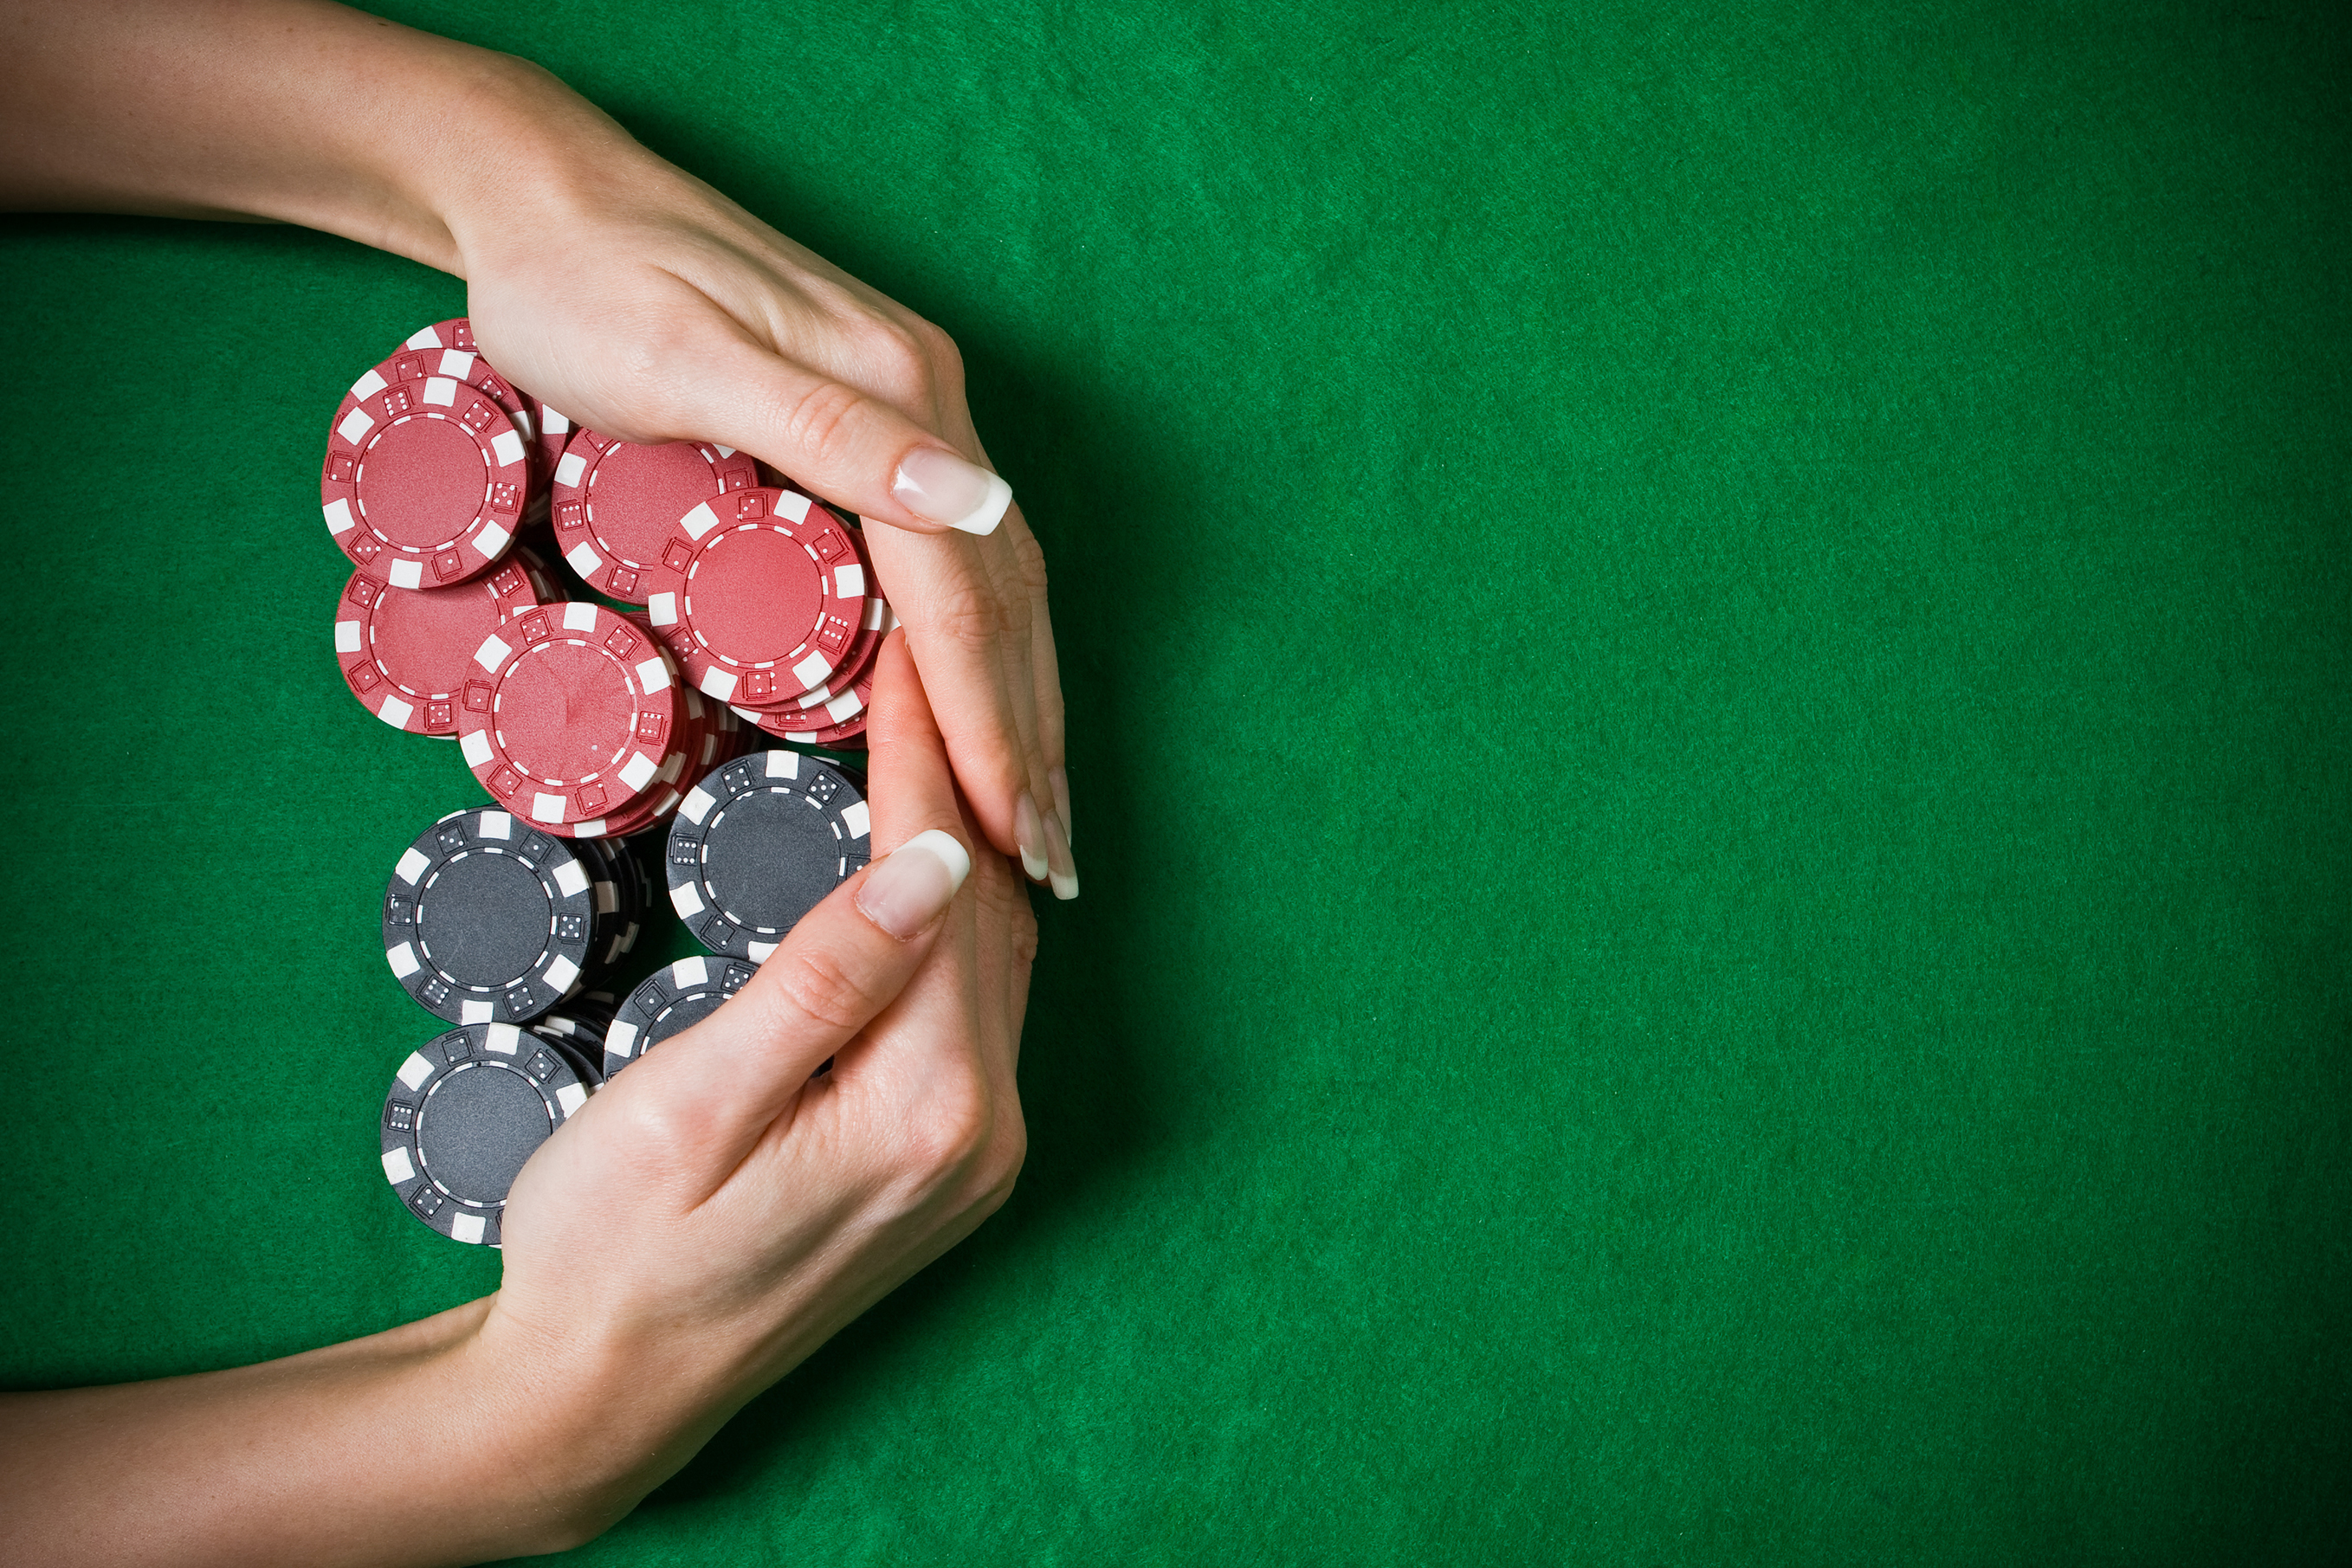 Suncoast Hotel And Casino Reviews, Free Poker Games Online